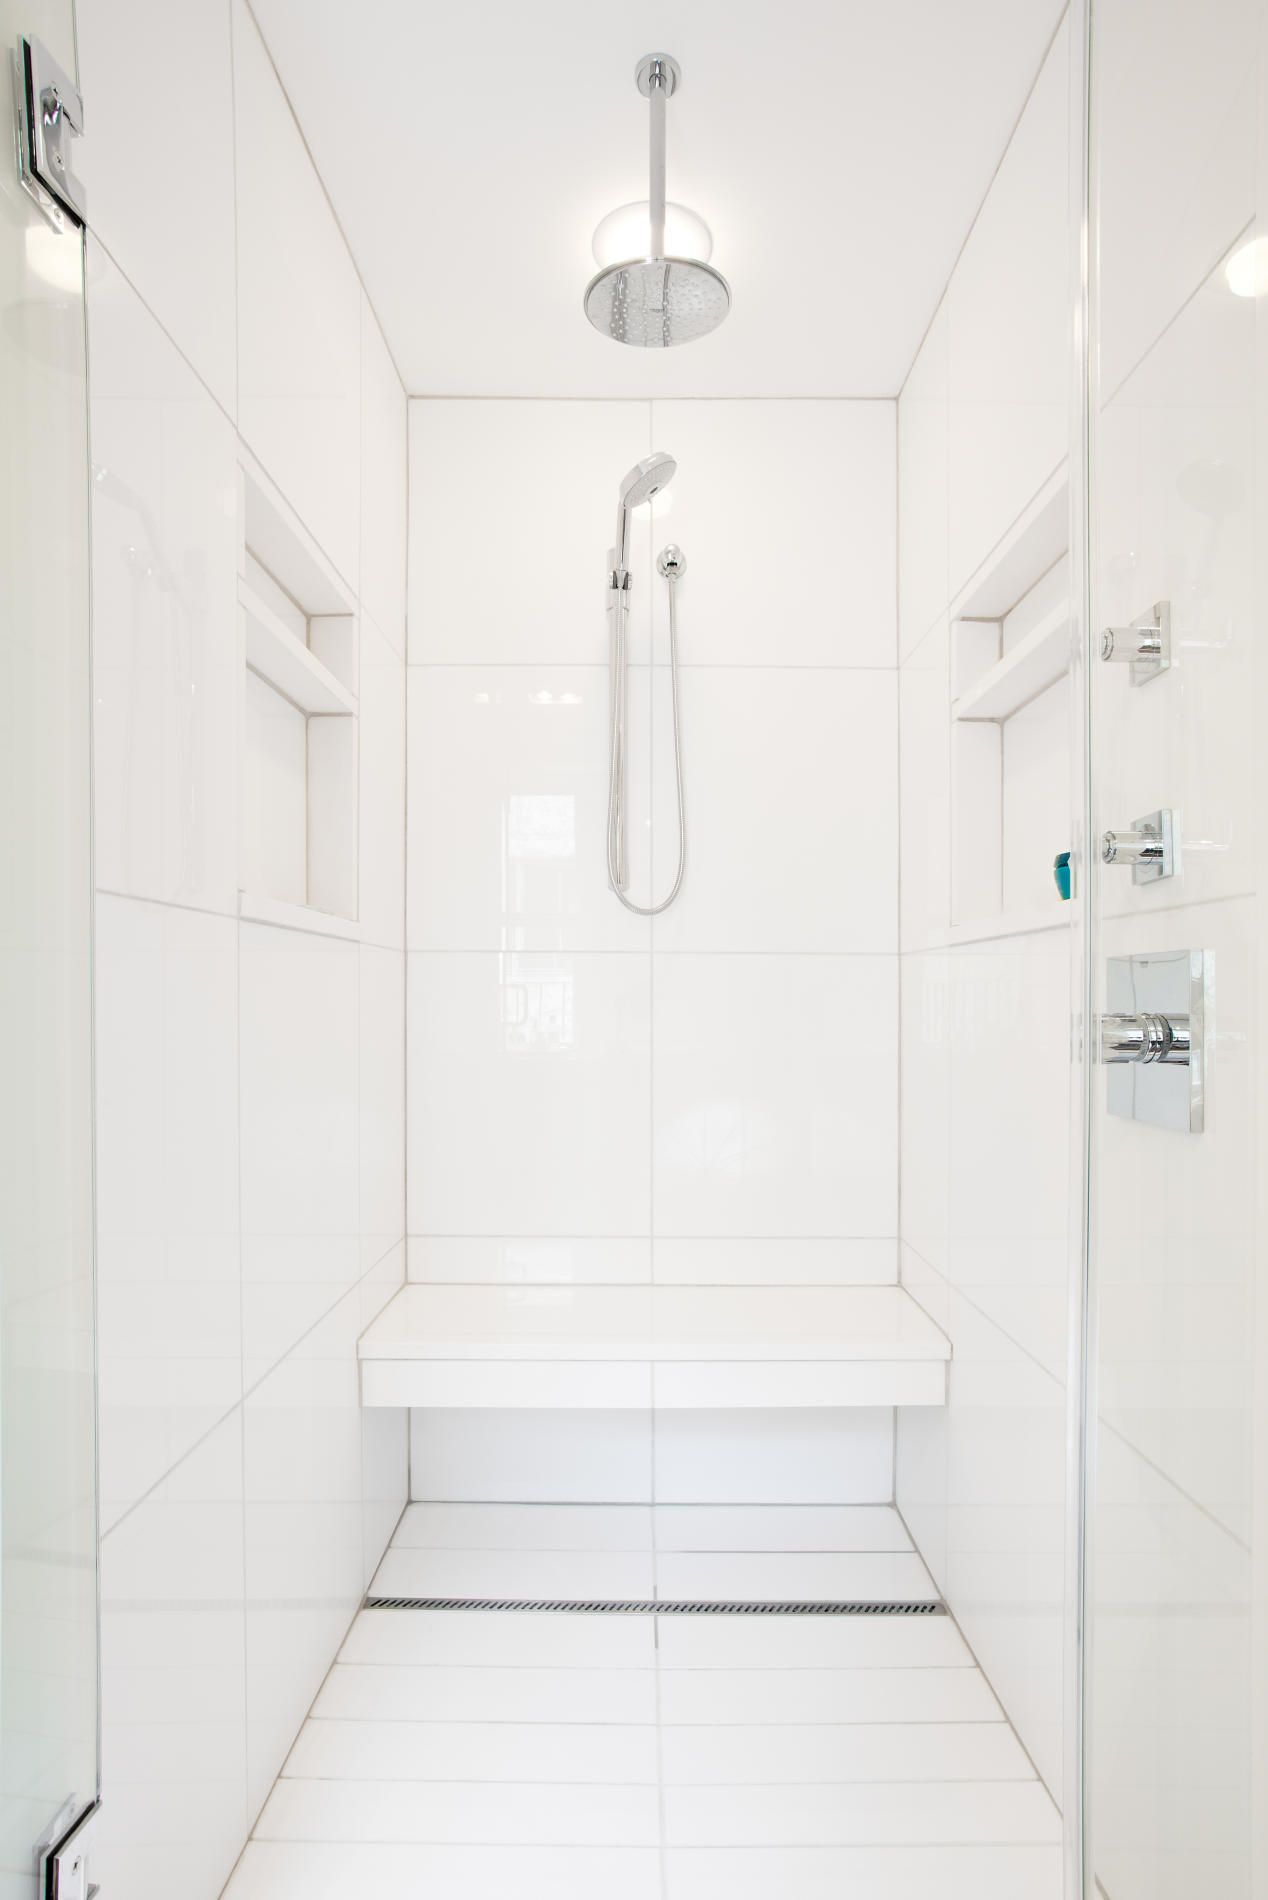 shower with bench, simple white tiles, clean lines | tiny bathroom ...